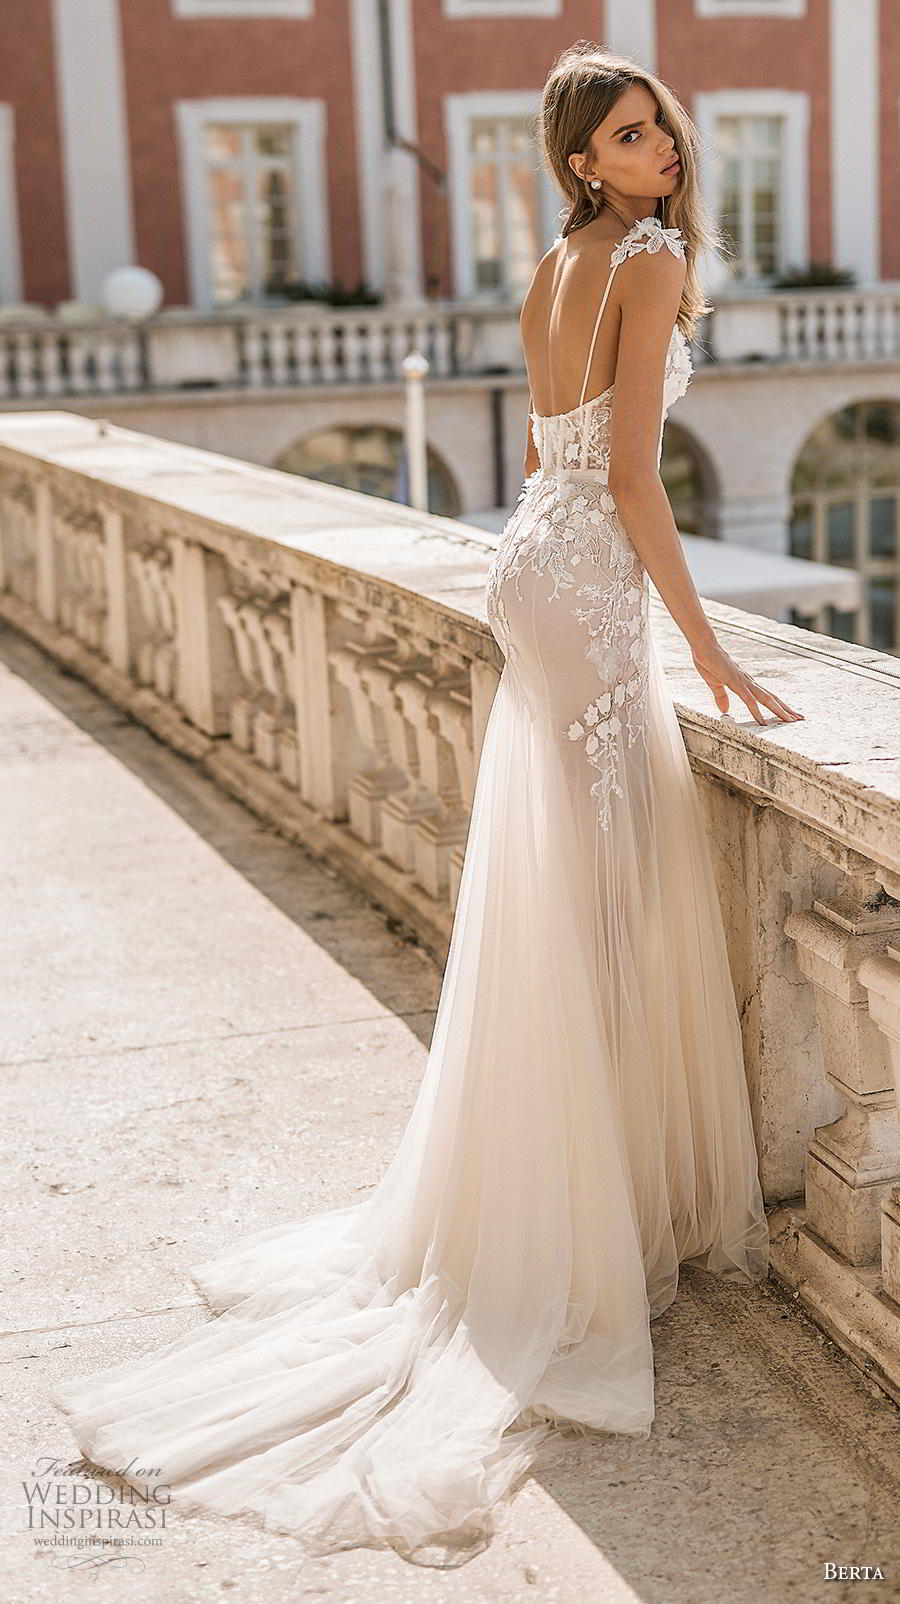 berta 2019 privee bridal long sheer sleeves spaghetti strap sweetheart neckline heavily embellished bodice bustier romantic a  line wedding dress backless medium train (1) bv